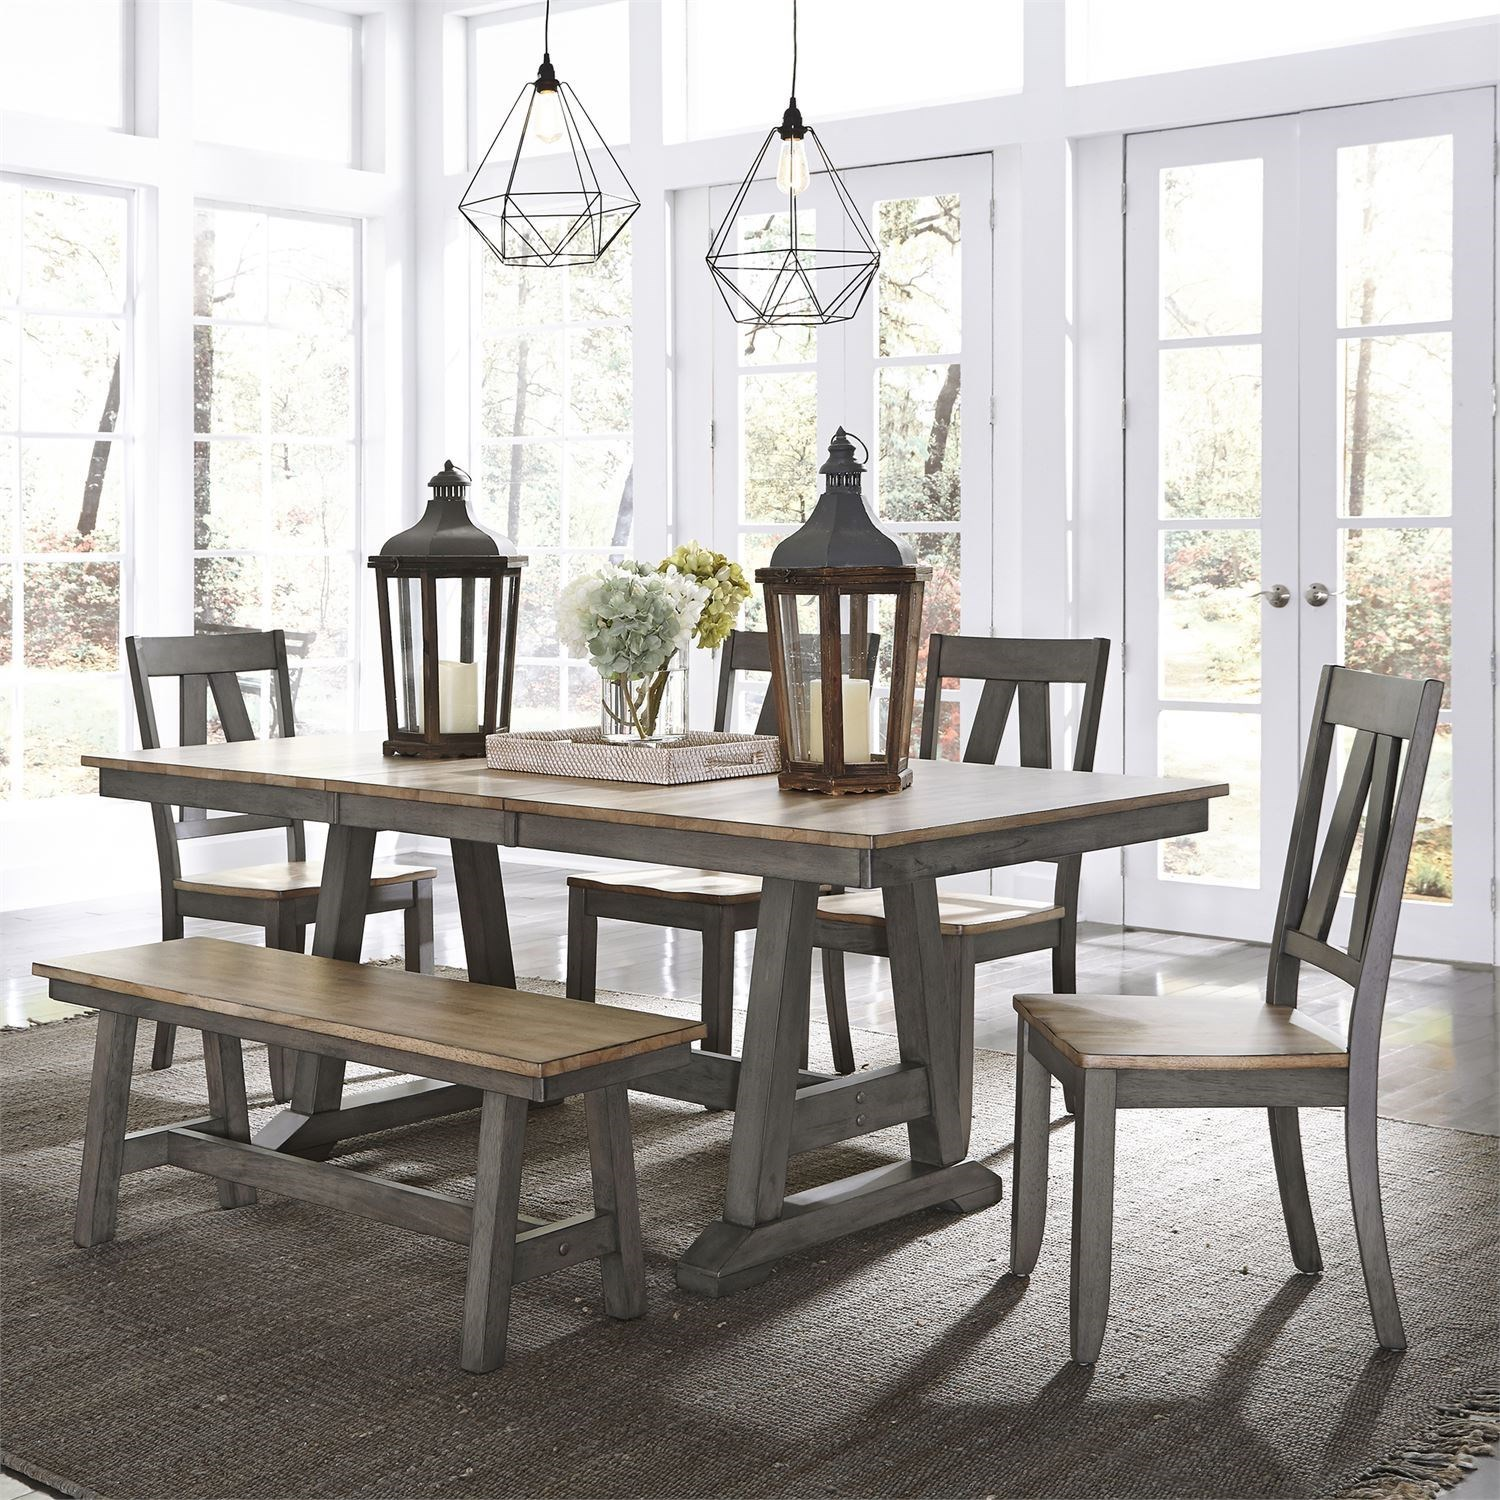 Lindsey Farm 6-Piece Trestle Table Set by Liberty Furniture at Northeast Factory Direct